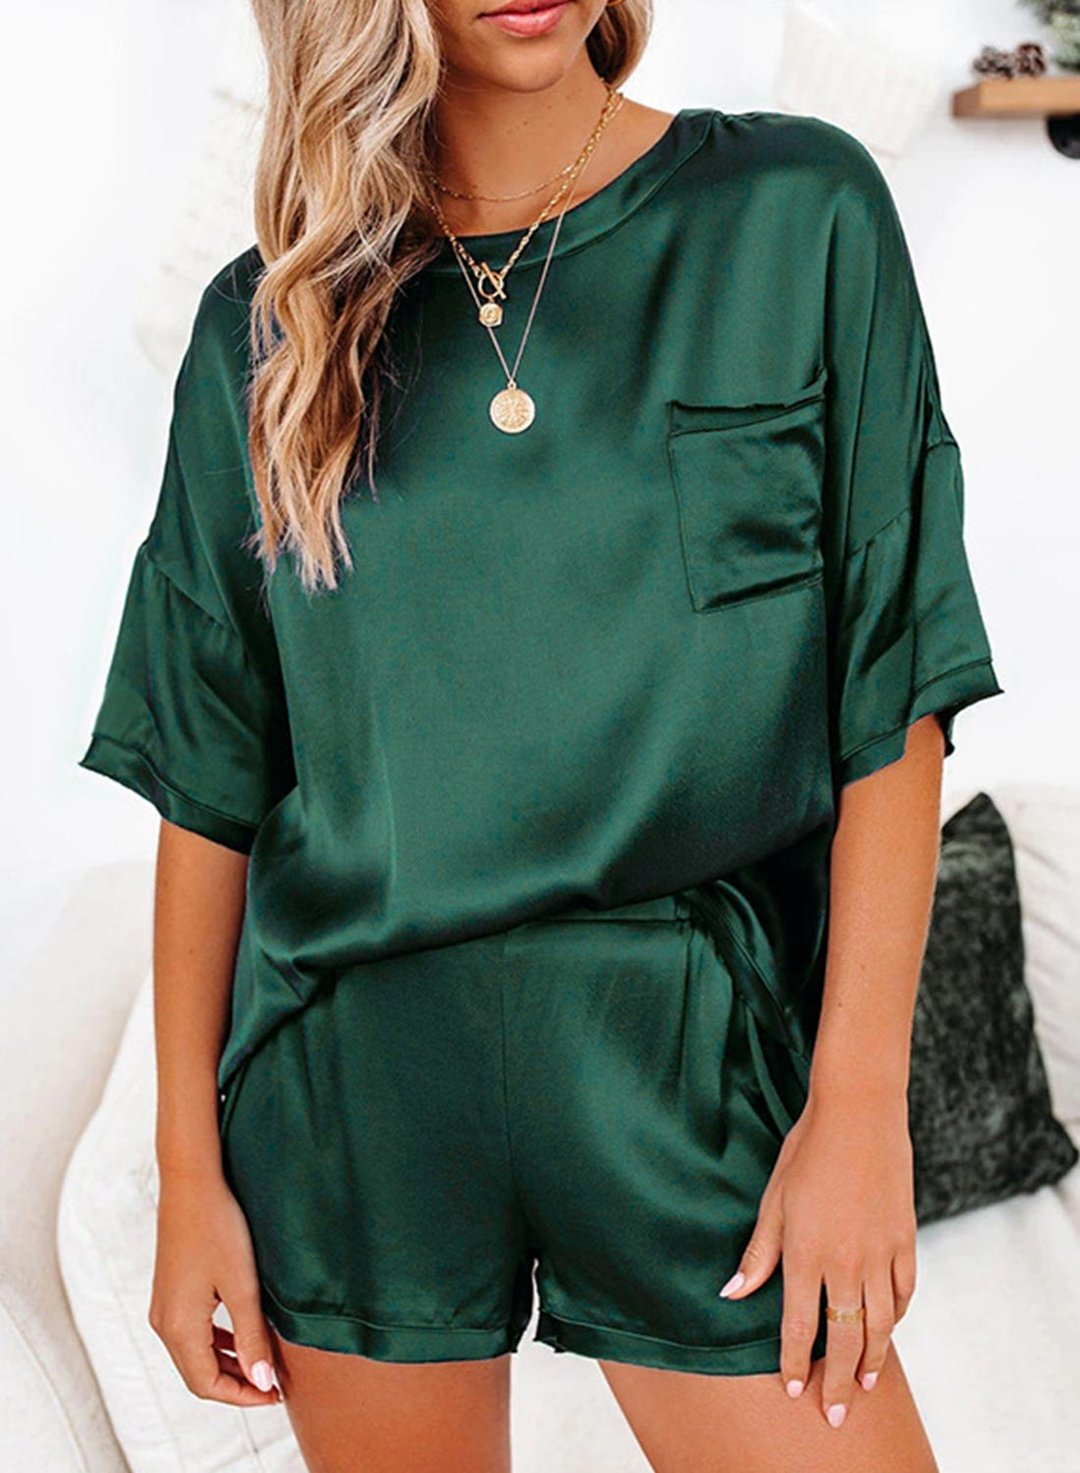 Green Women's Loungewear Sets Solid 3/4 Sleeve Round Neck Pocket 2-Piece Loungewear Set LC4511567-9